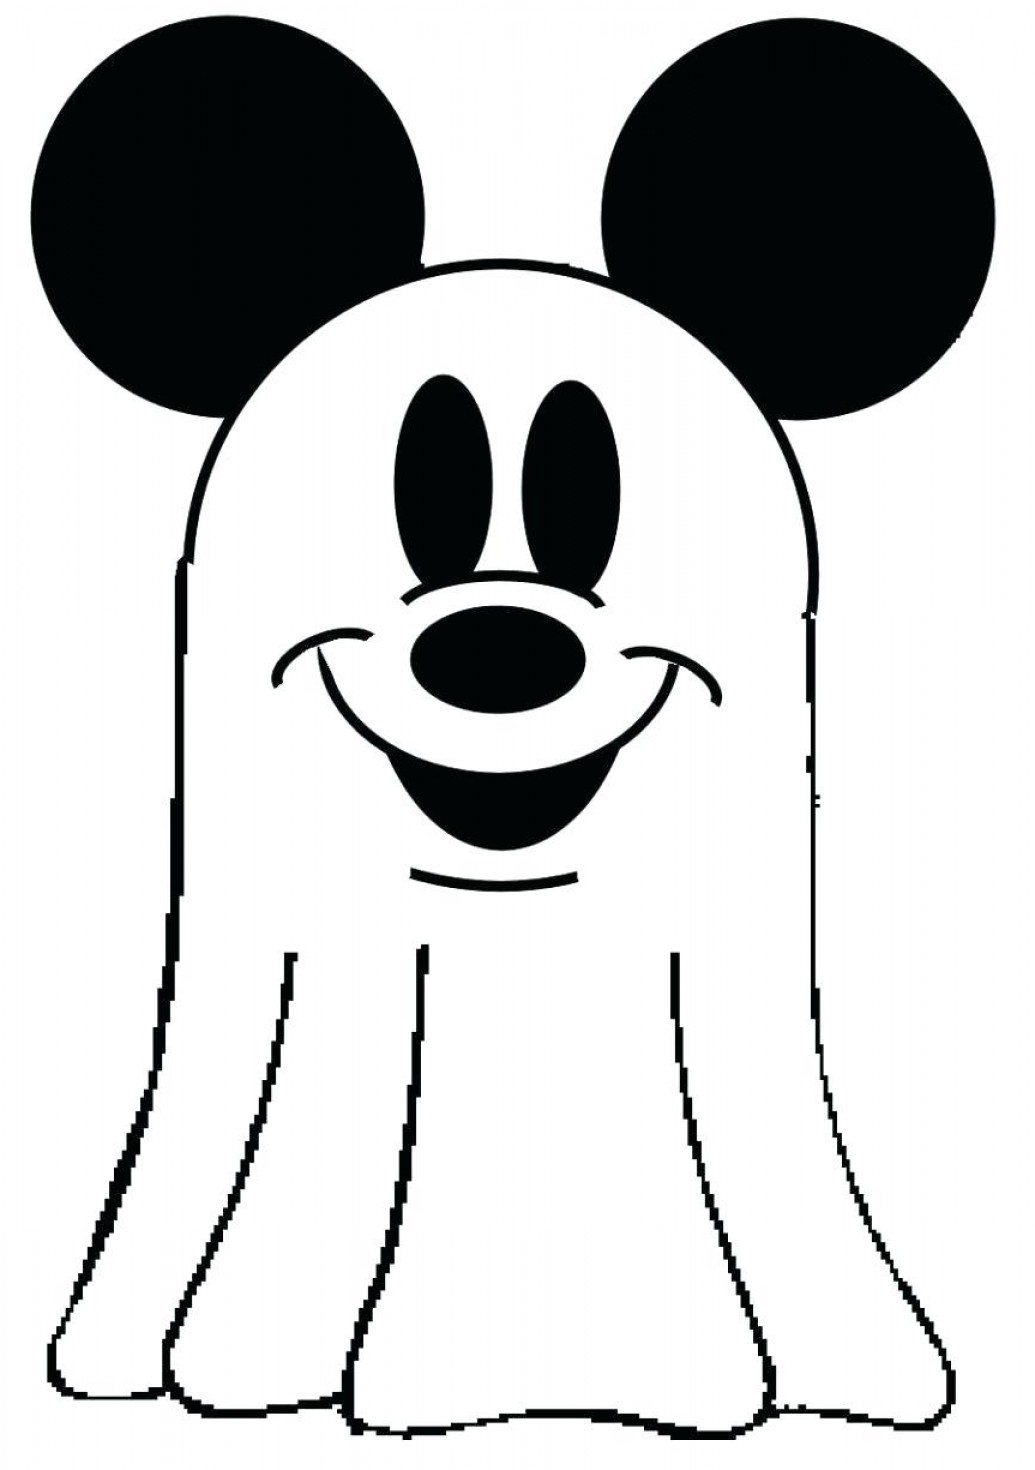 Mickey vector createmepink for Mickey mouse face template for cake